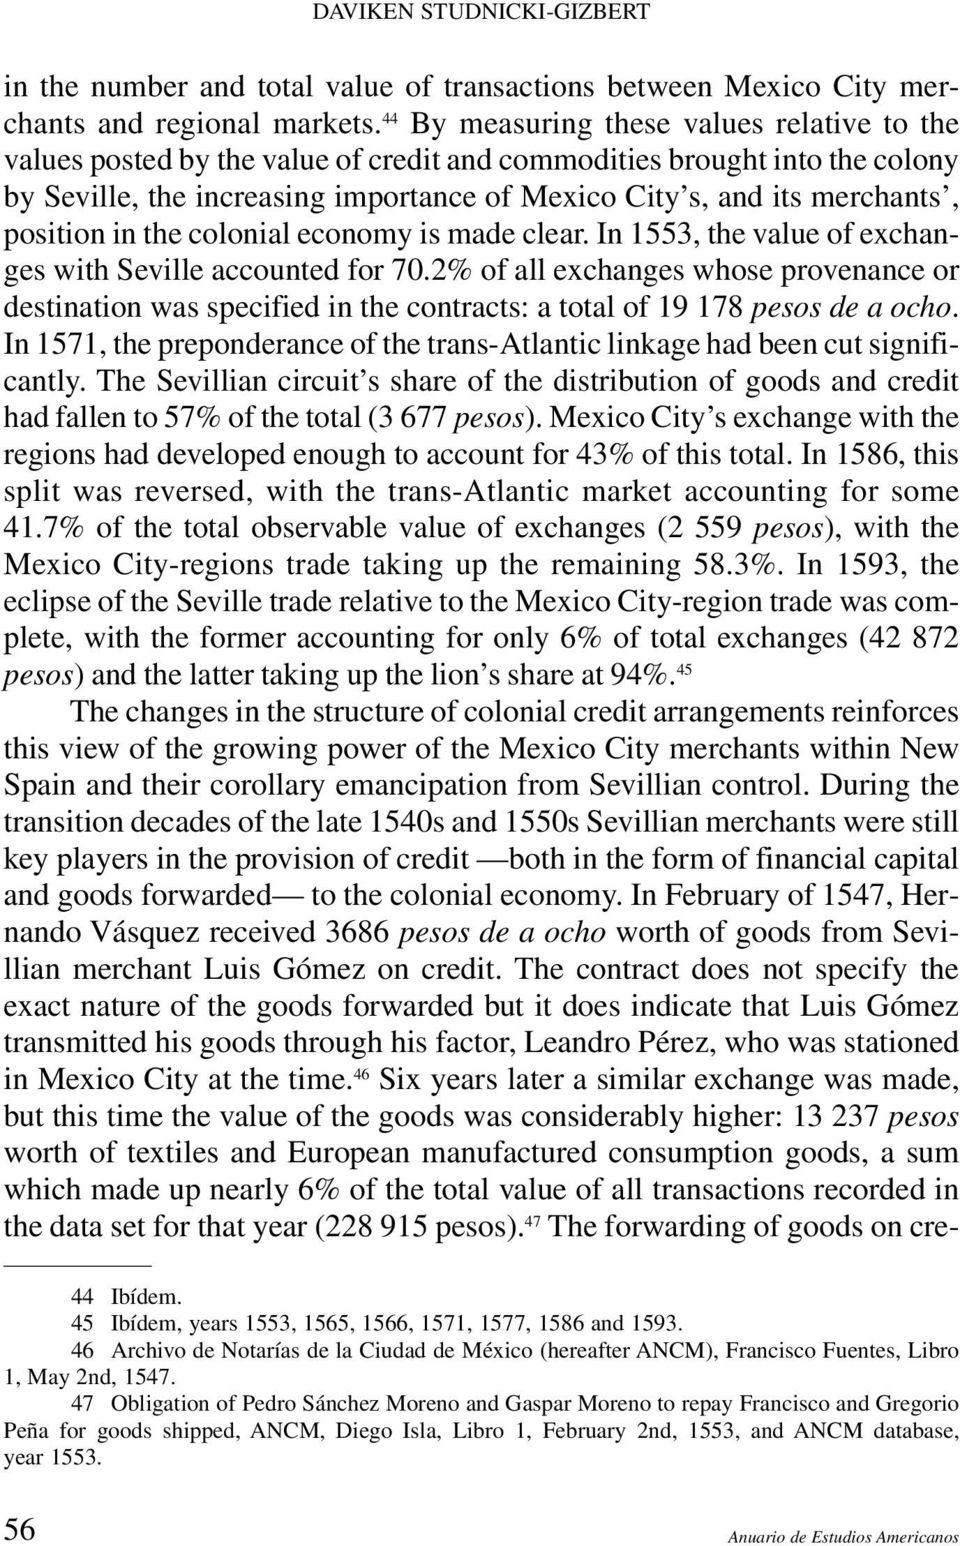 position in the colonial economy is made clear. In 1553, the value of exchanges with Seville accounted for 70.